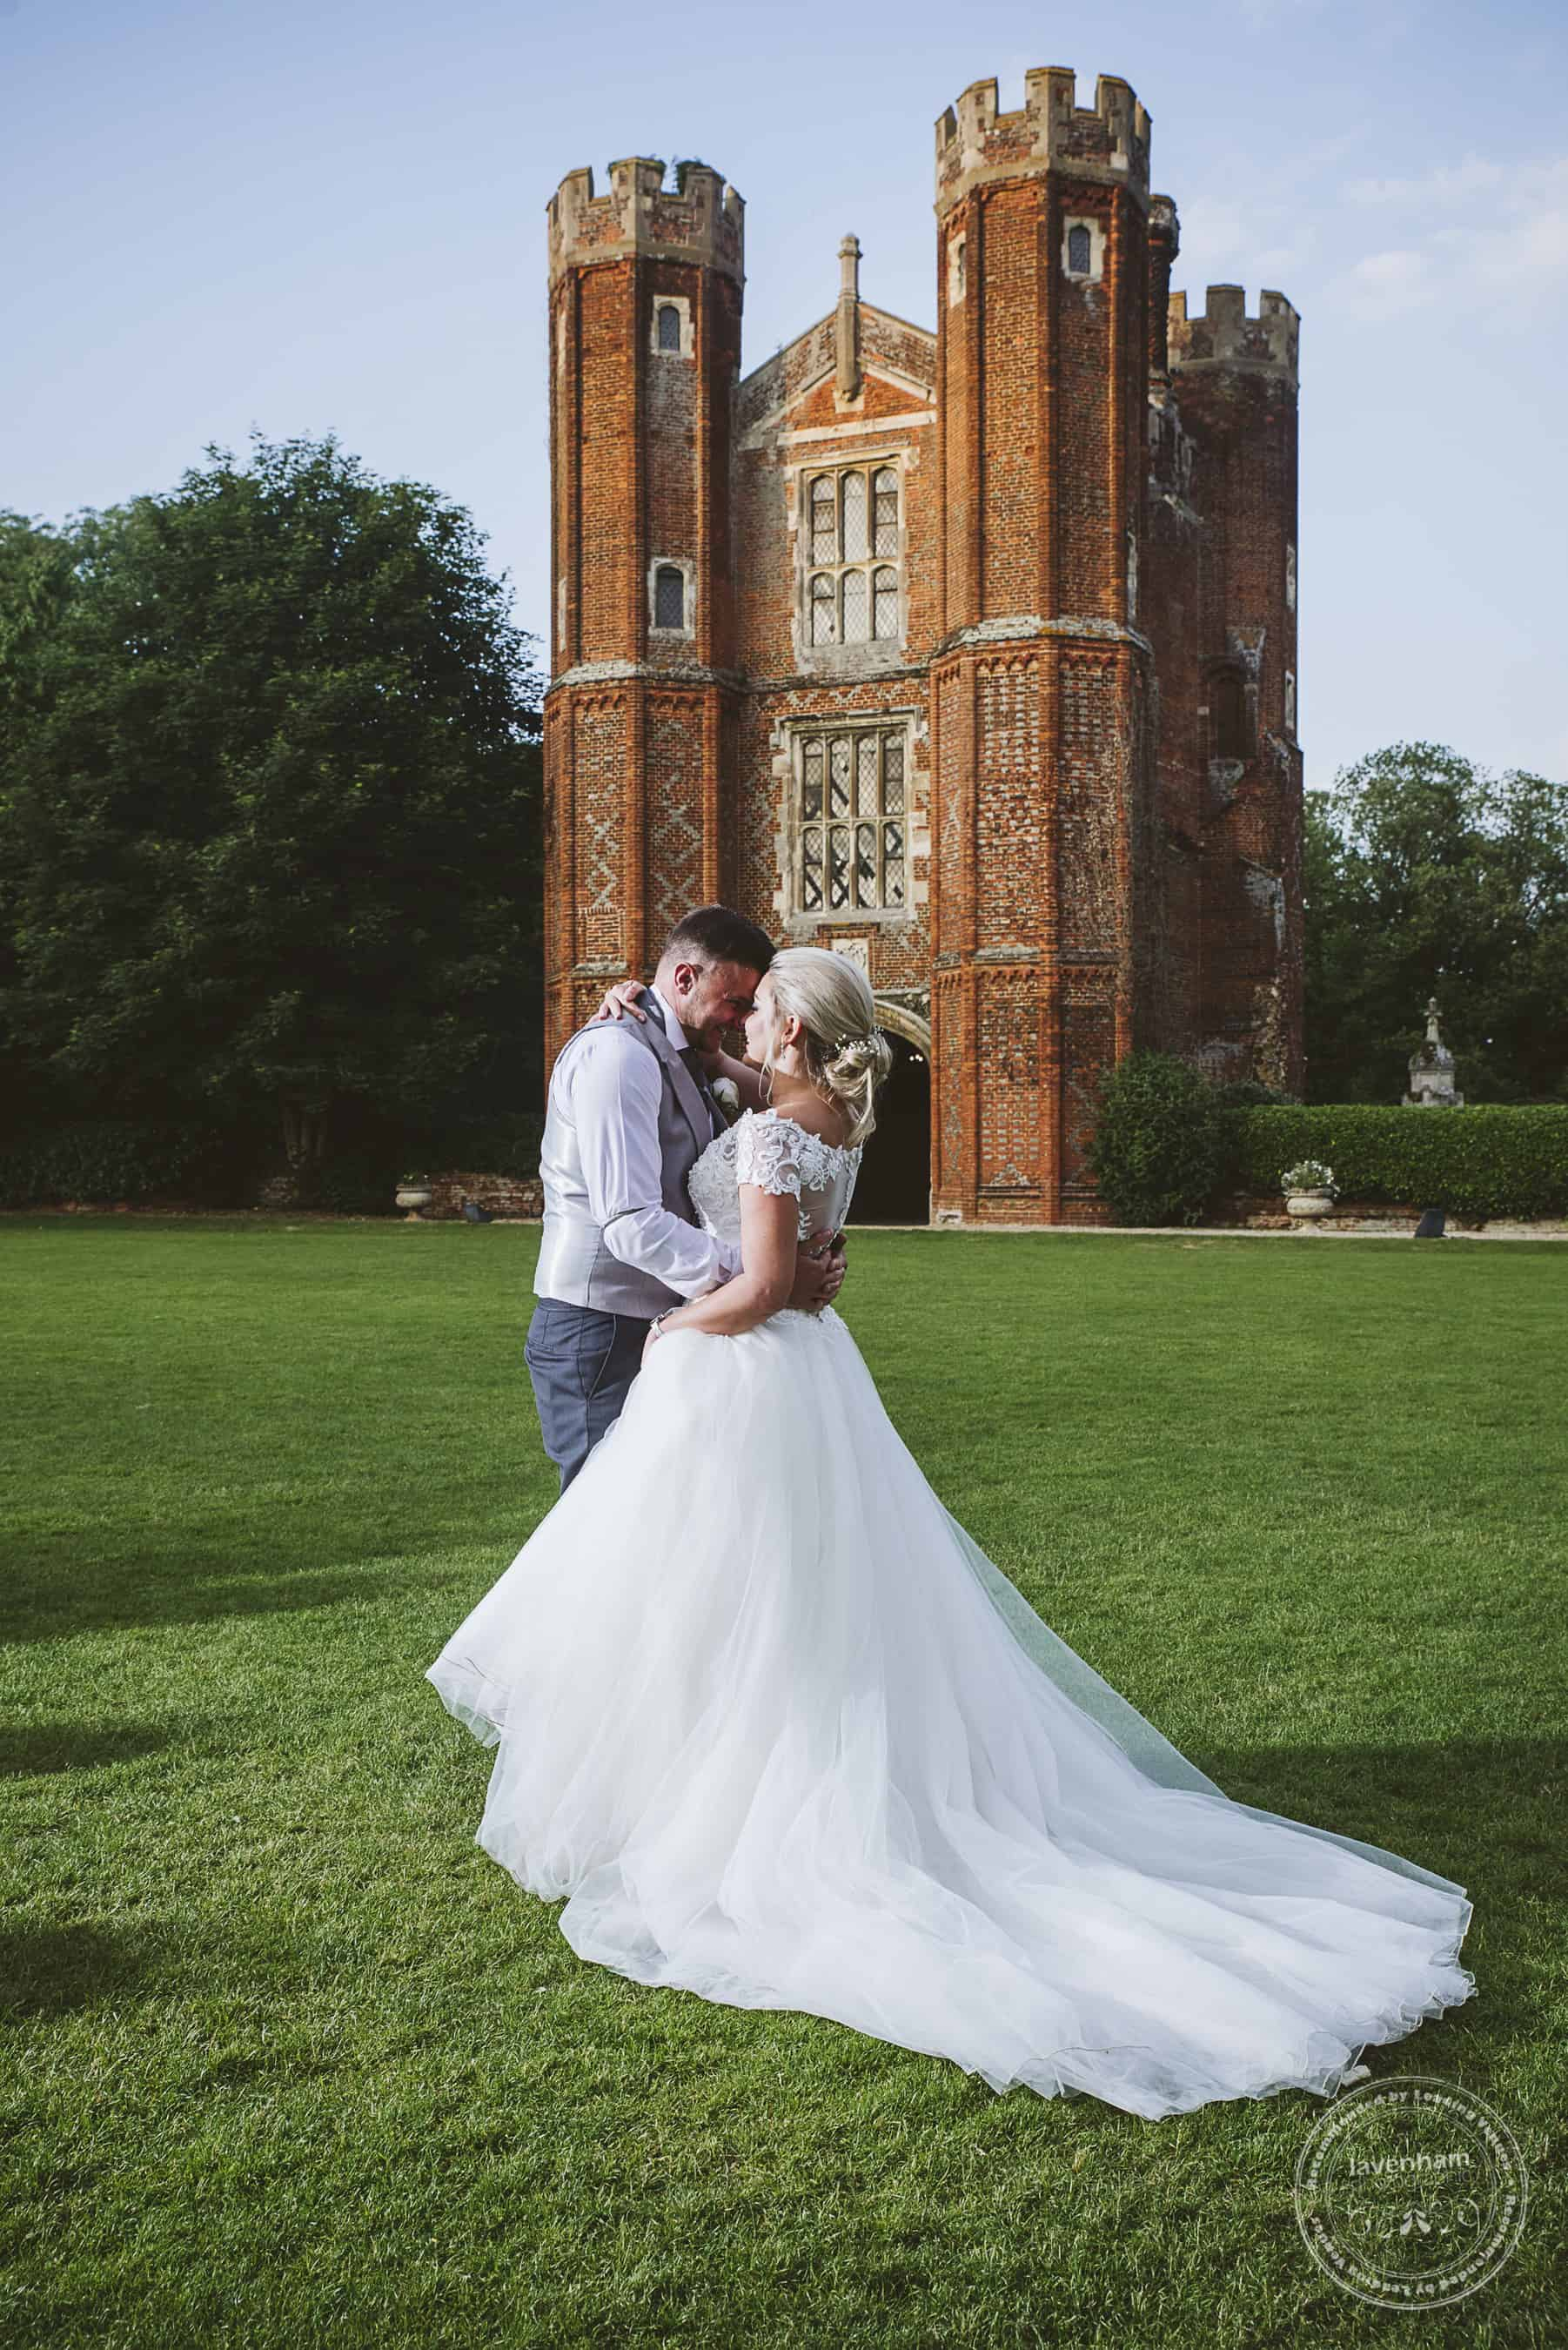 030618 Leez Priory Wedding Photography Lavenham Photographic 097